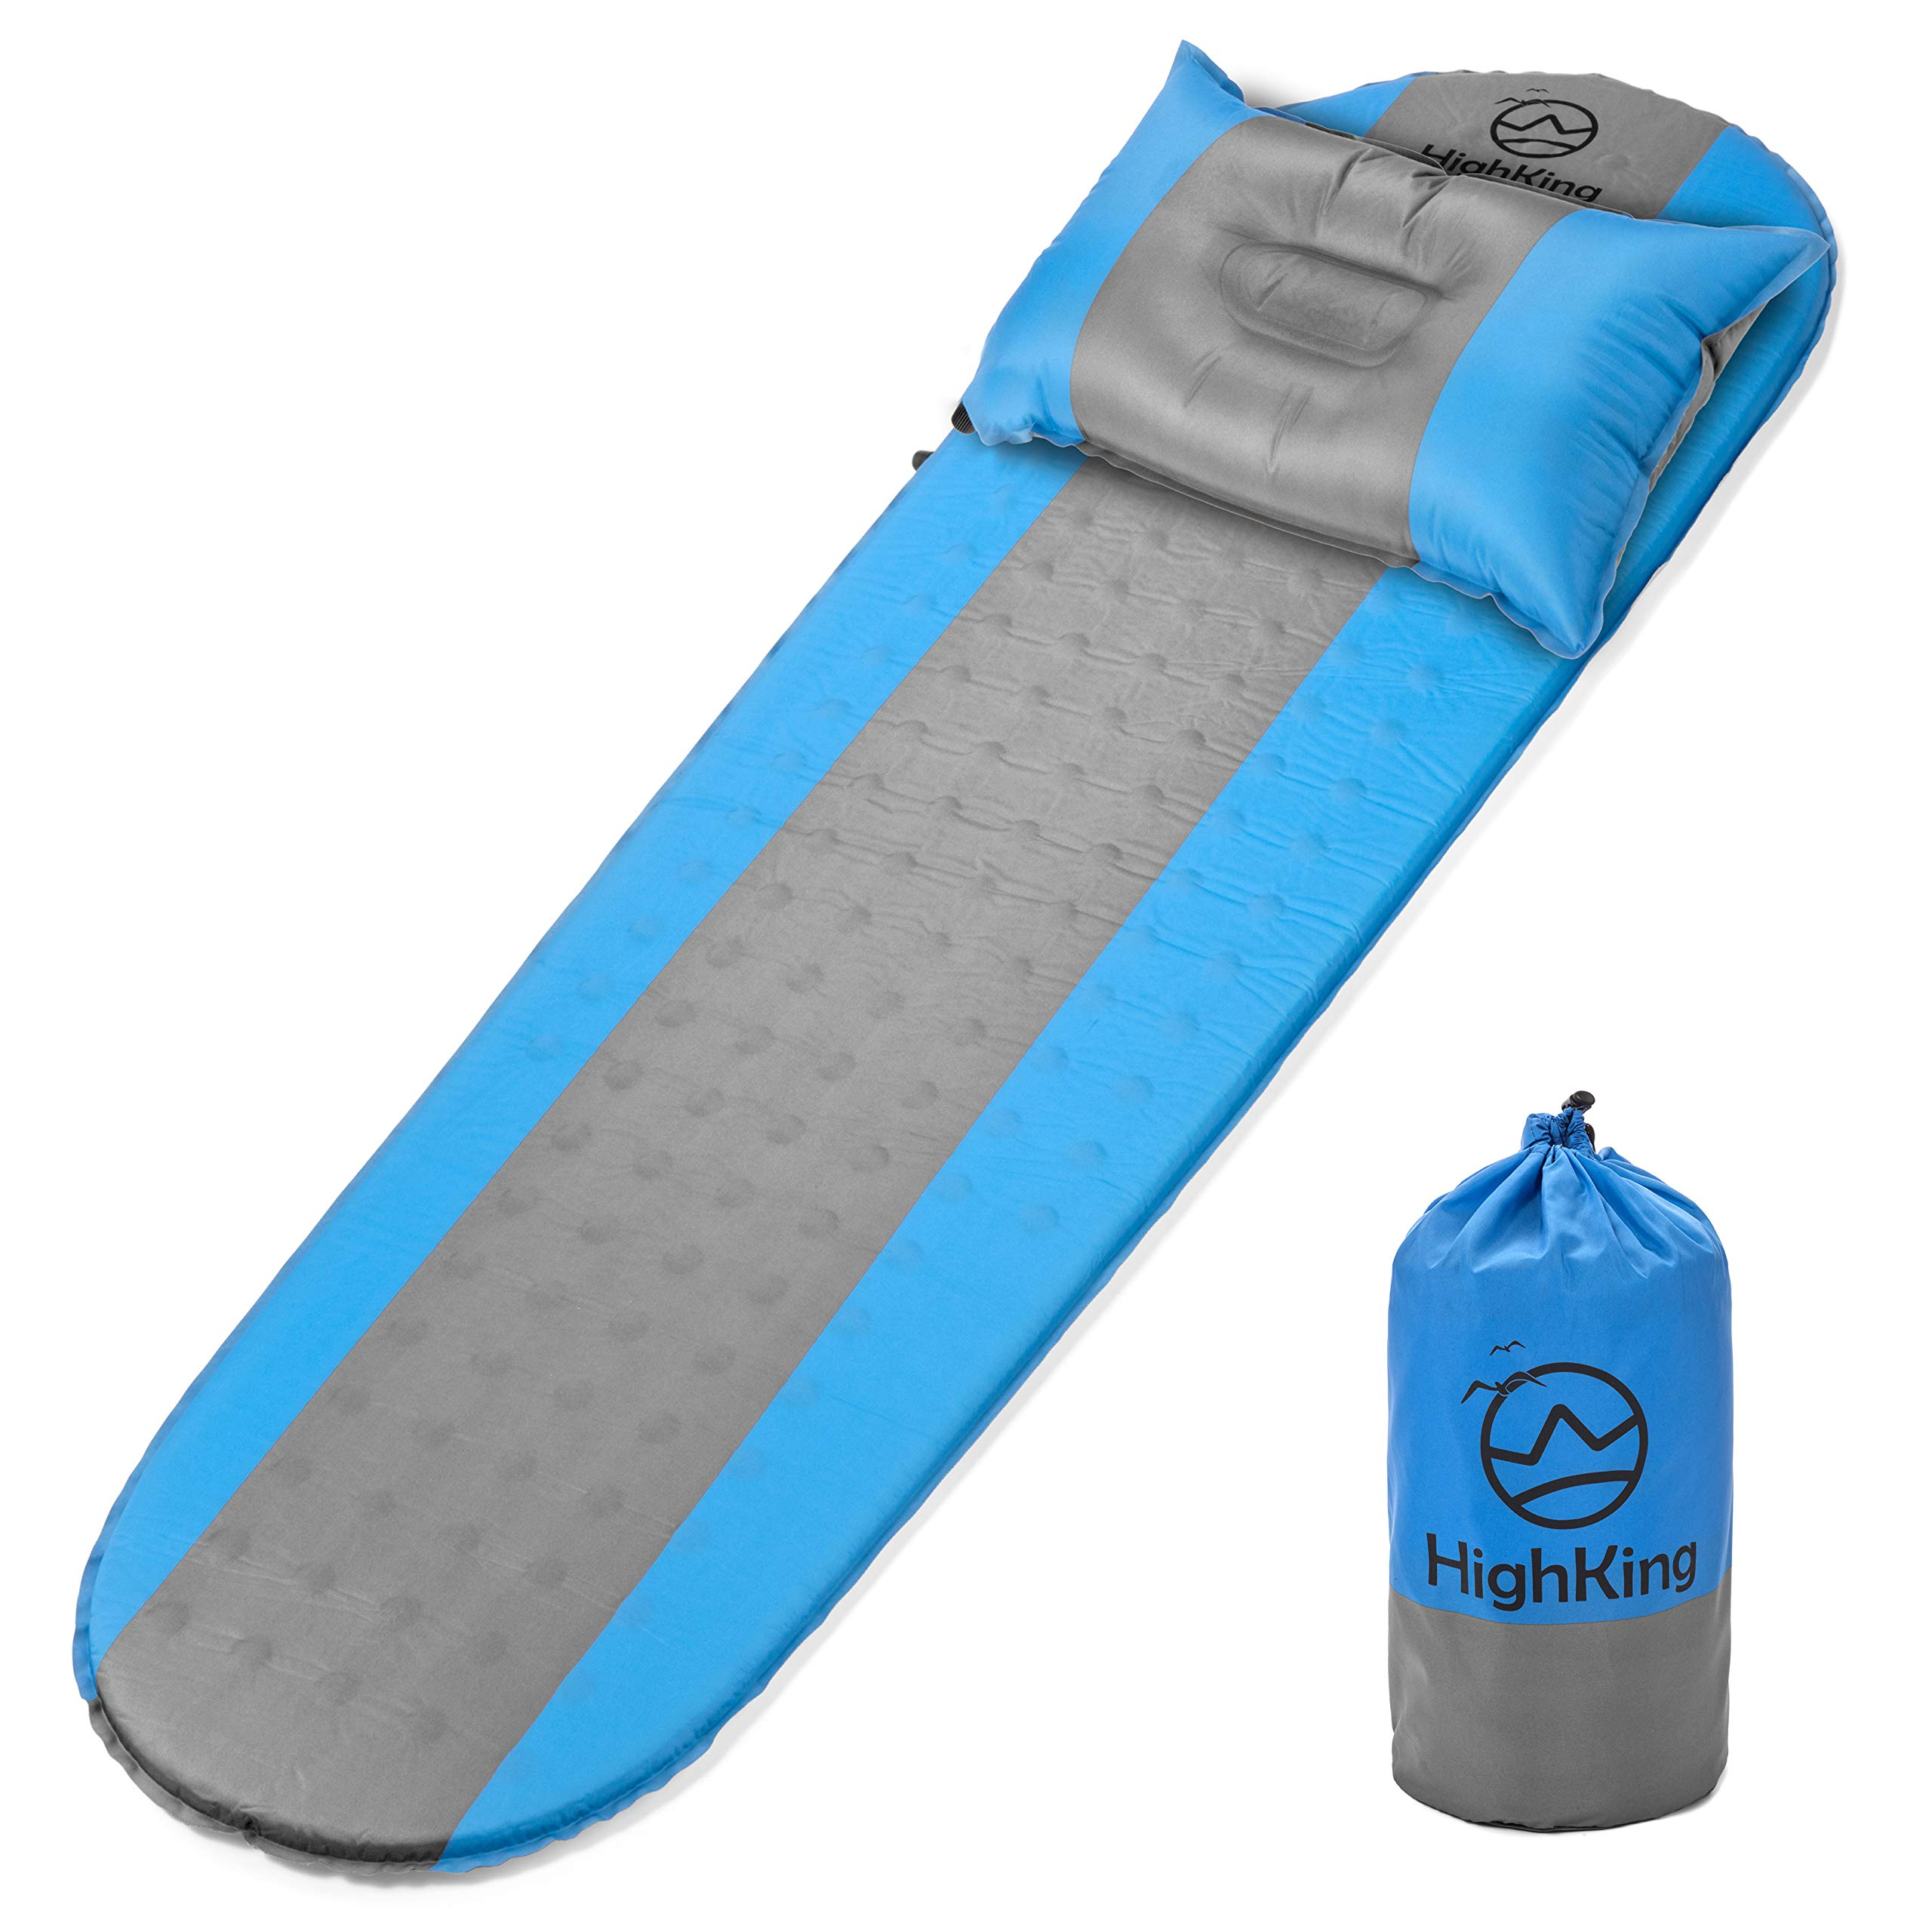 Self Inflating Sleeping Pad - Inflatable Sleeping Mat Perfect for Outdoor Adventures, Backpacking, Camping - Comfortable Ultralight Sleeping Pad Mattress with Carrying Bag + Bonus Pillow by HighKing by HighKing‎